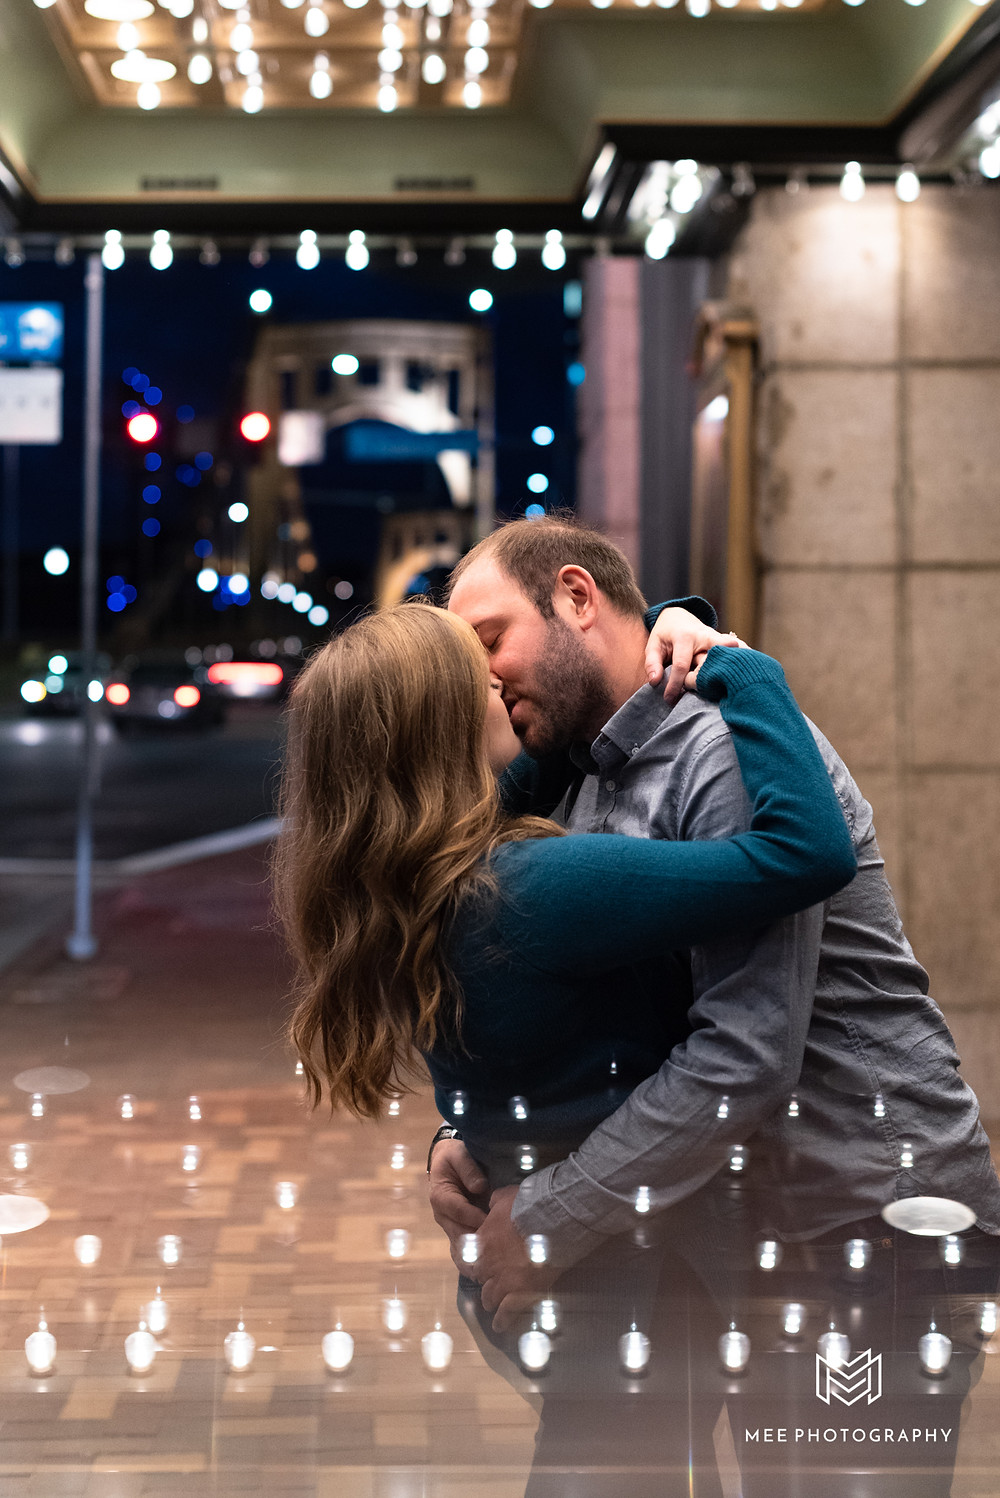 Night engagement session in PIttsburgh with the city lights